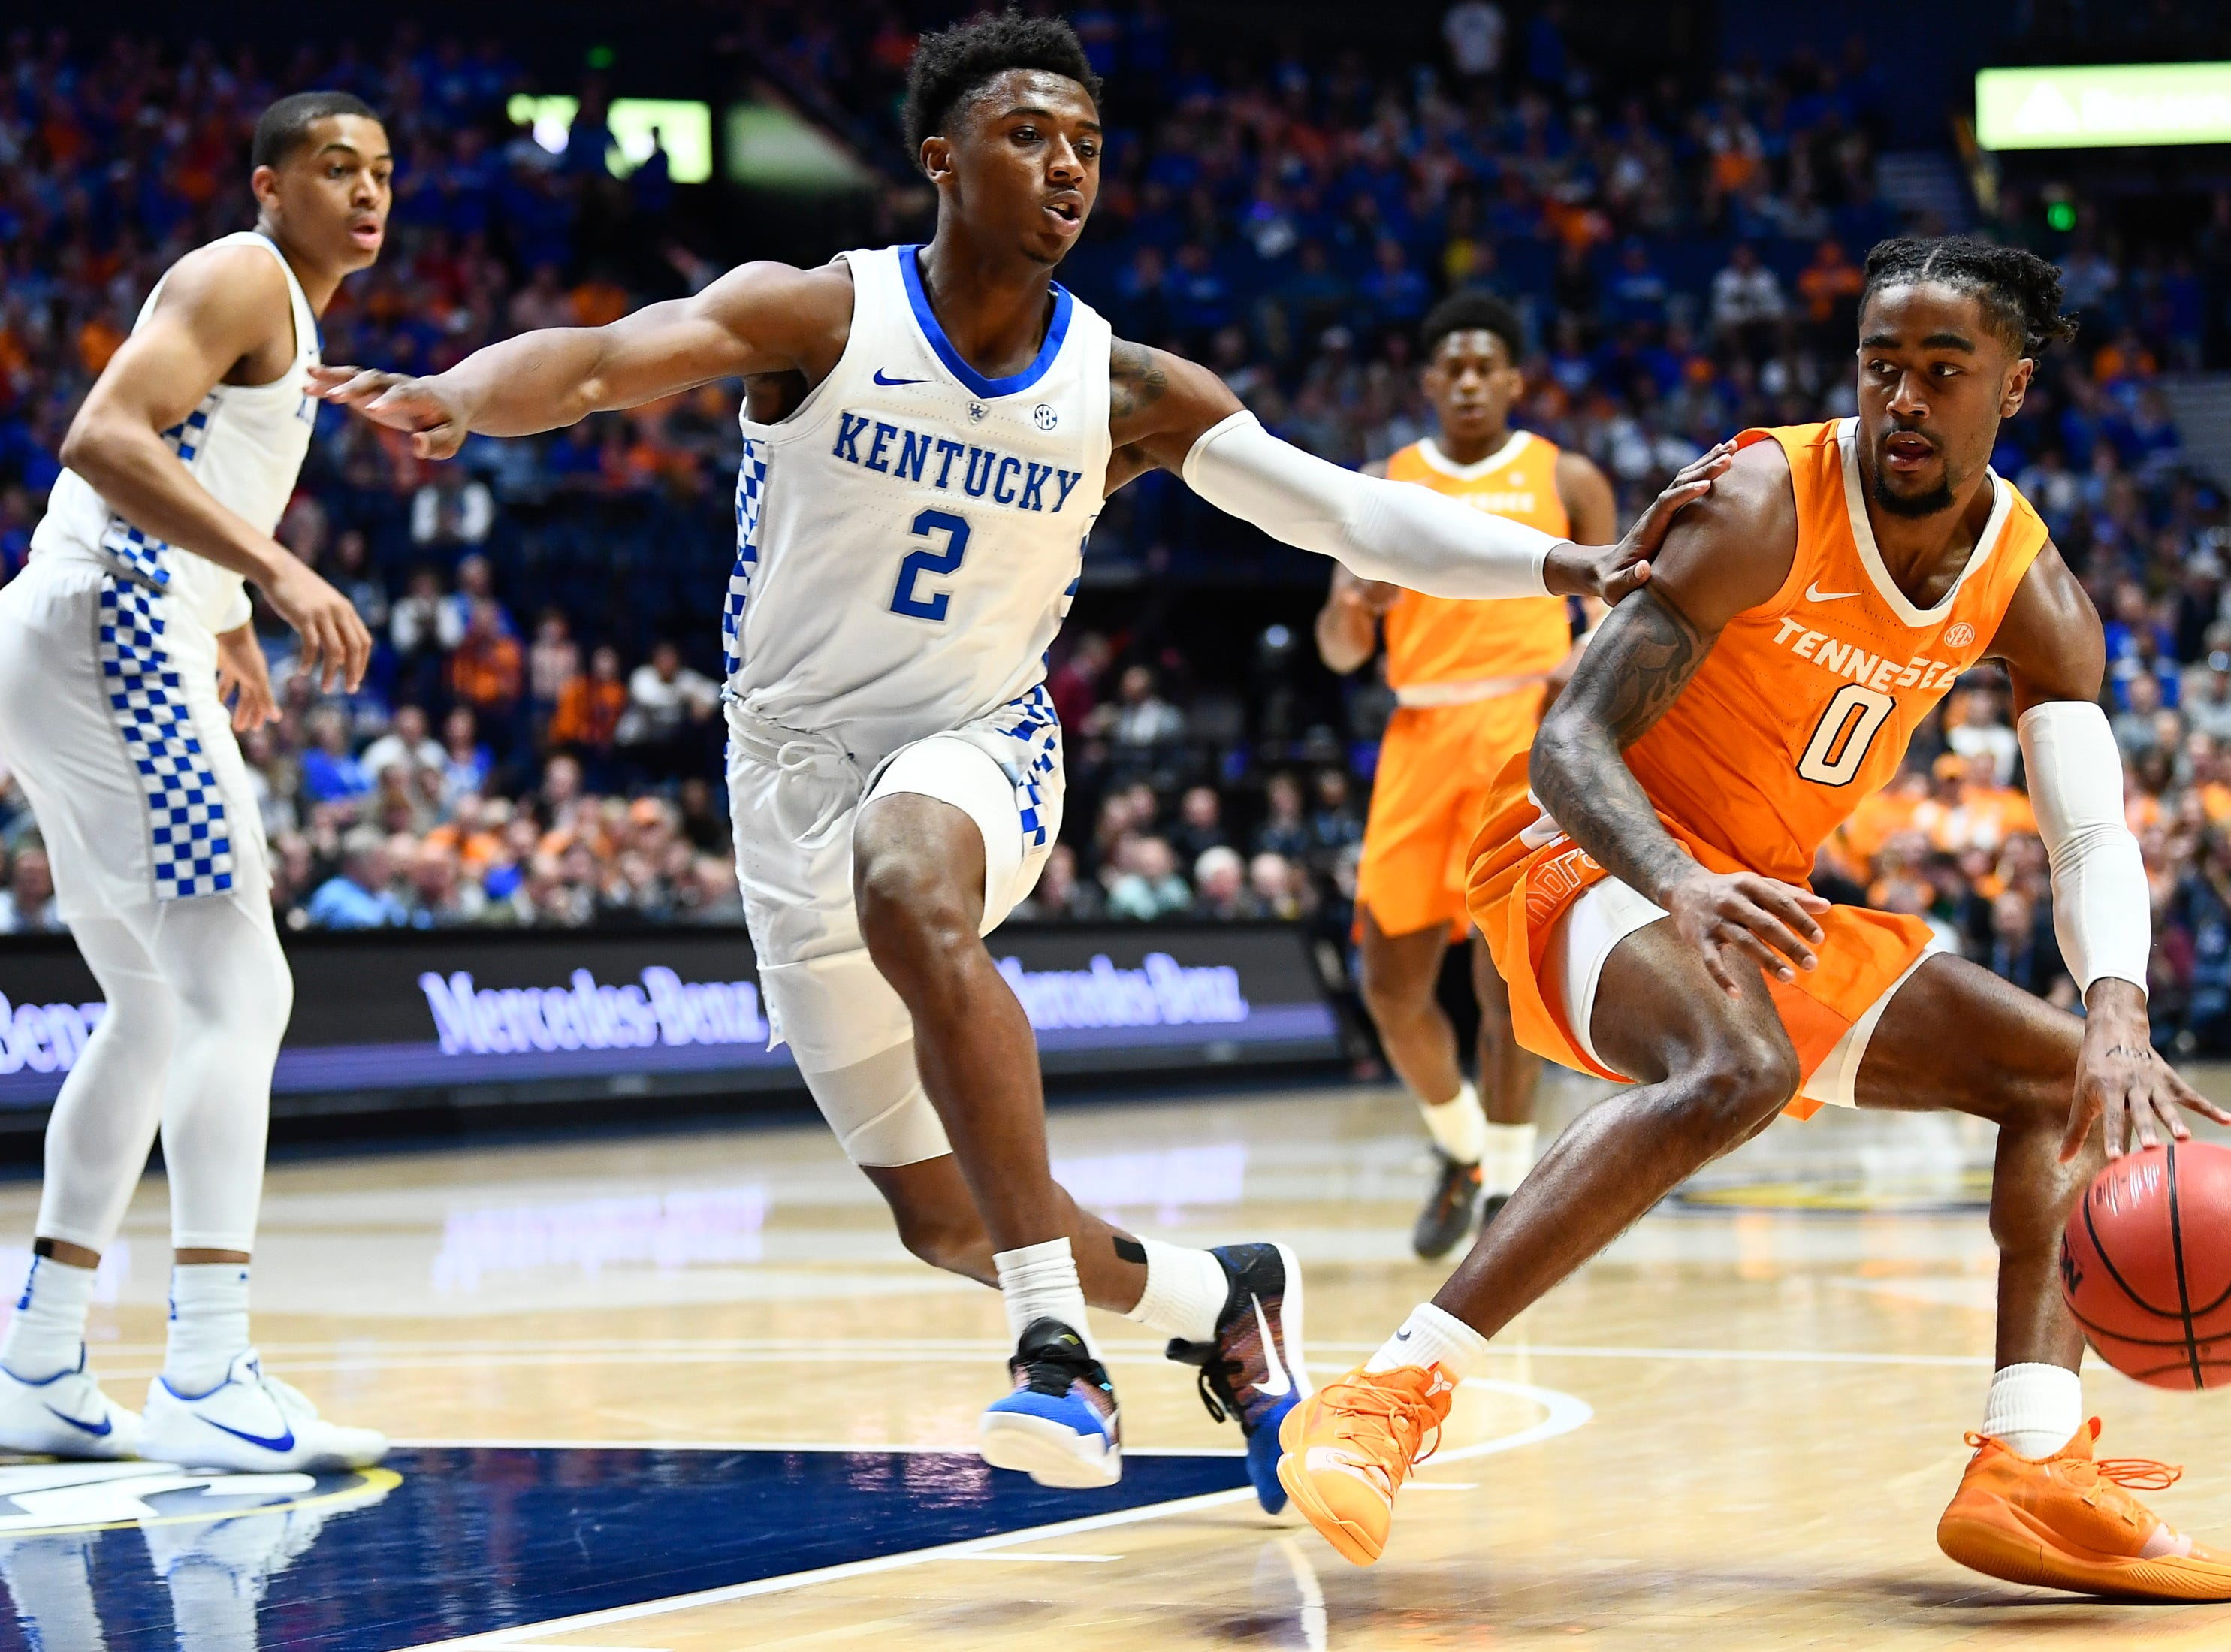 Tennessee guard Jordan Bone (0) looks for an opening past Kentucky guard Ashton Hagans (2) during the first half of the SEC Men's Basketball Tournament semifinal game at Bridgestone Arena in Nashville, Tenn., Saturday, March 16, 2019.